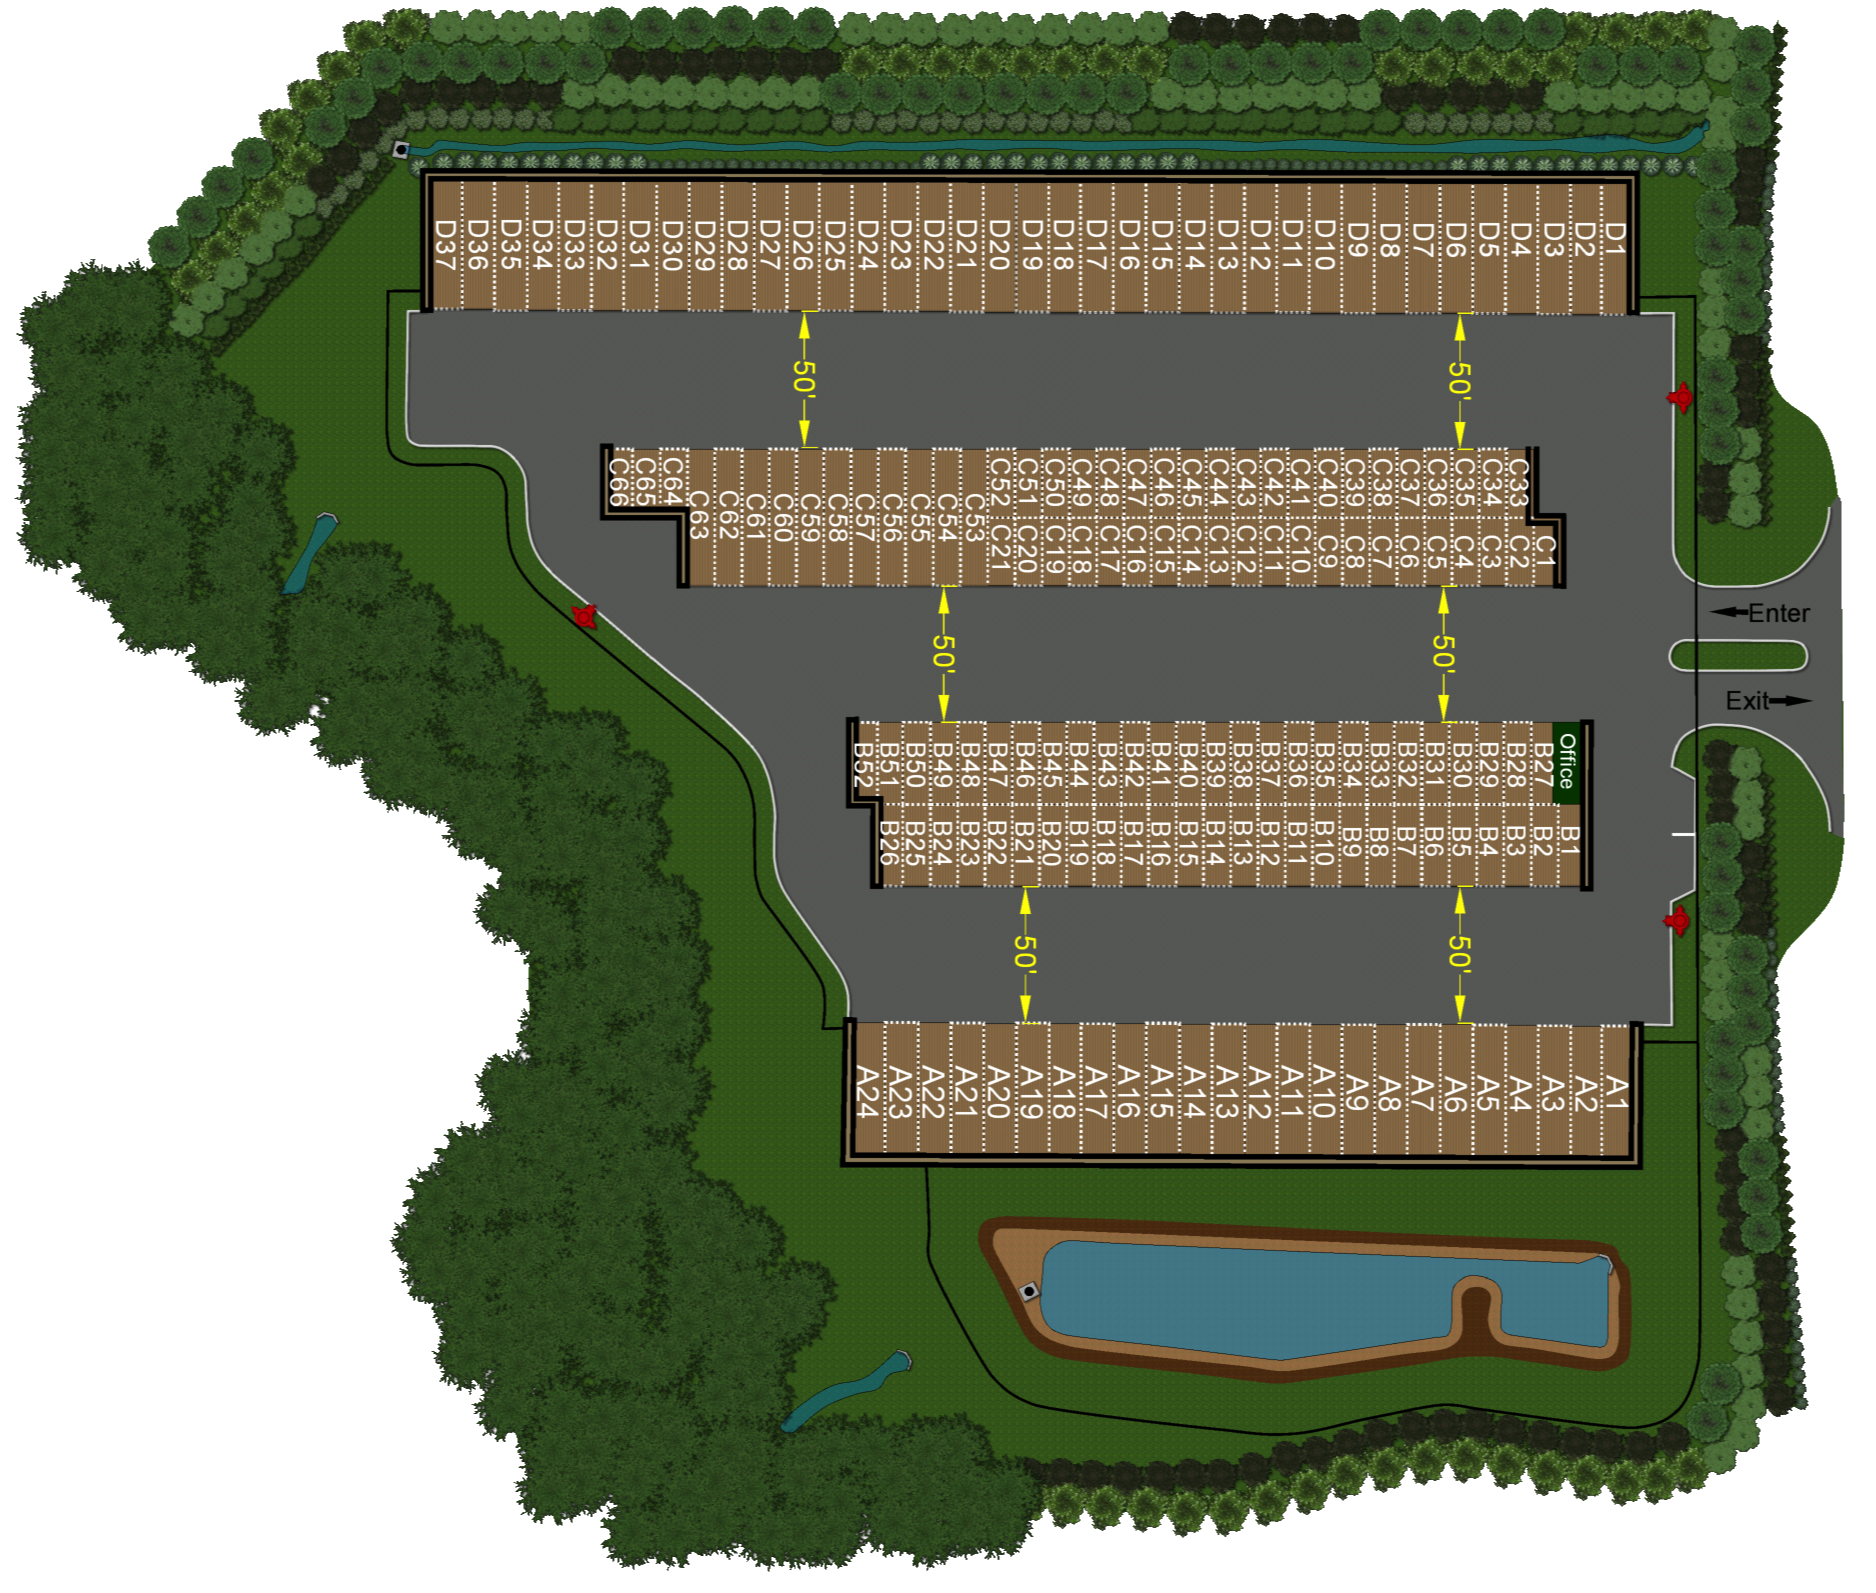 Overlook of facility site layout